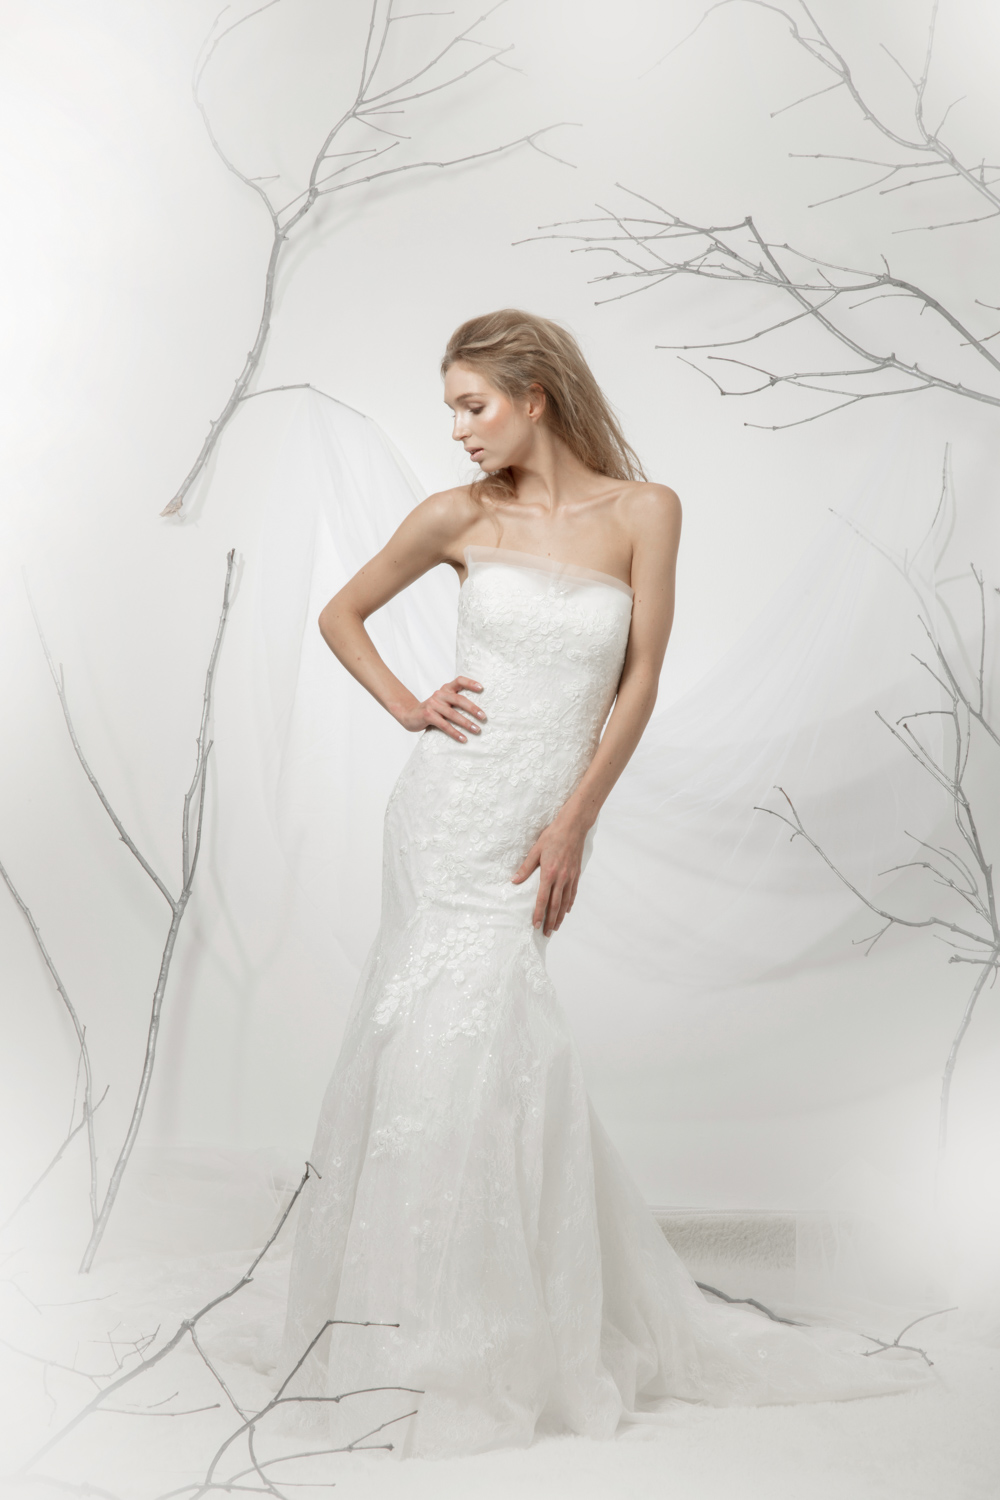 Sleeveless, fit and flare wedding dress by CCM Wedding